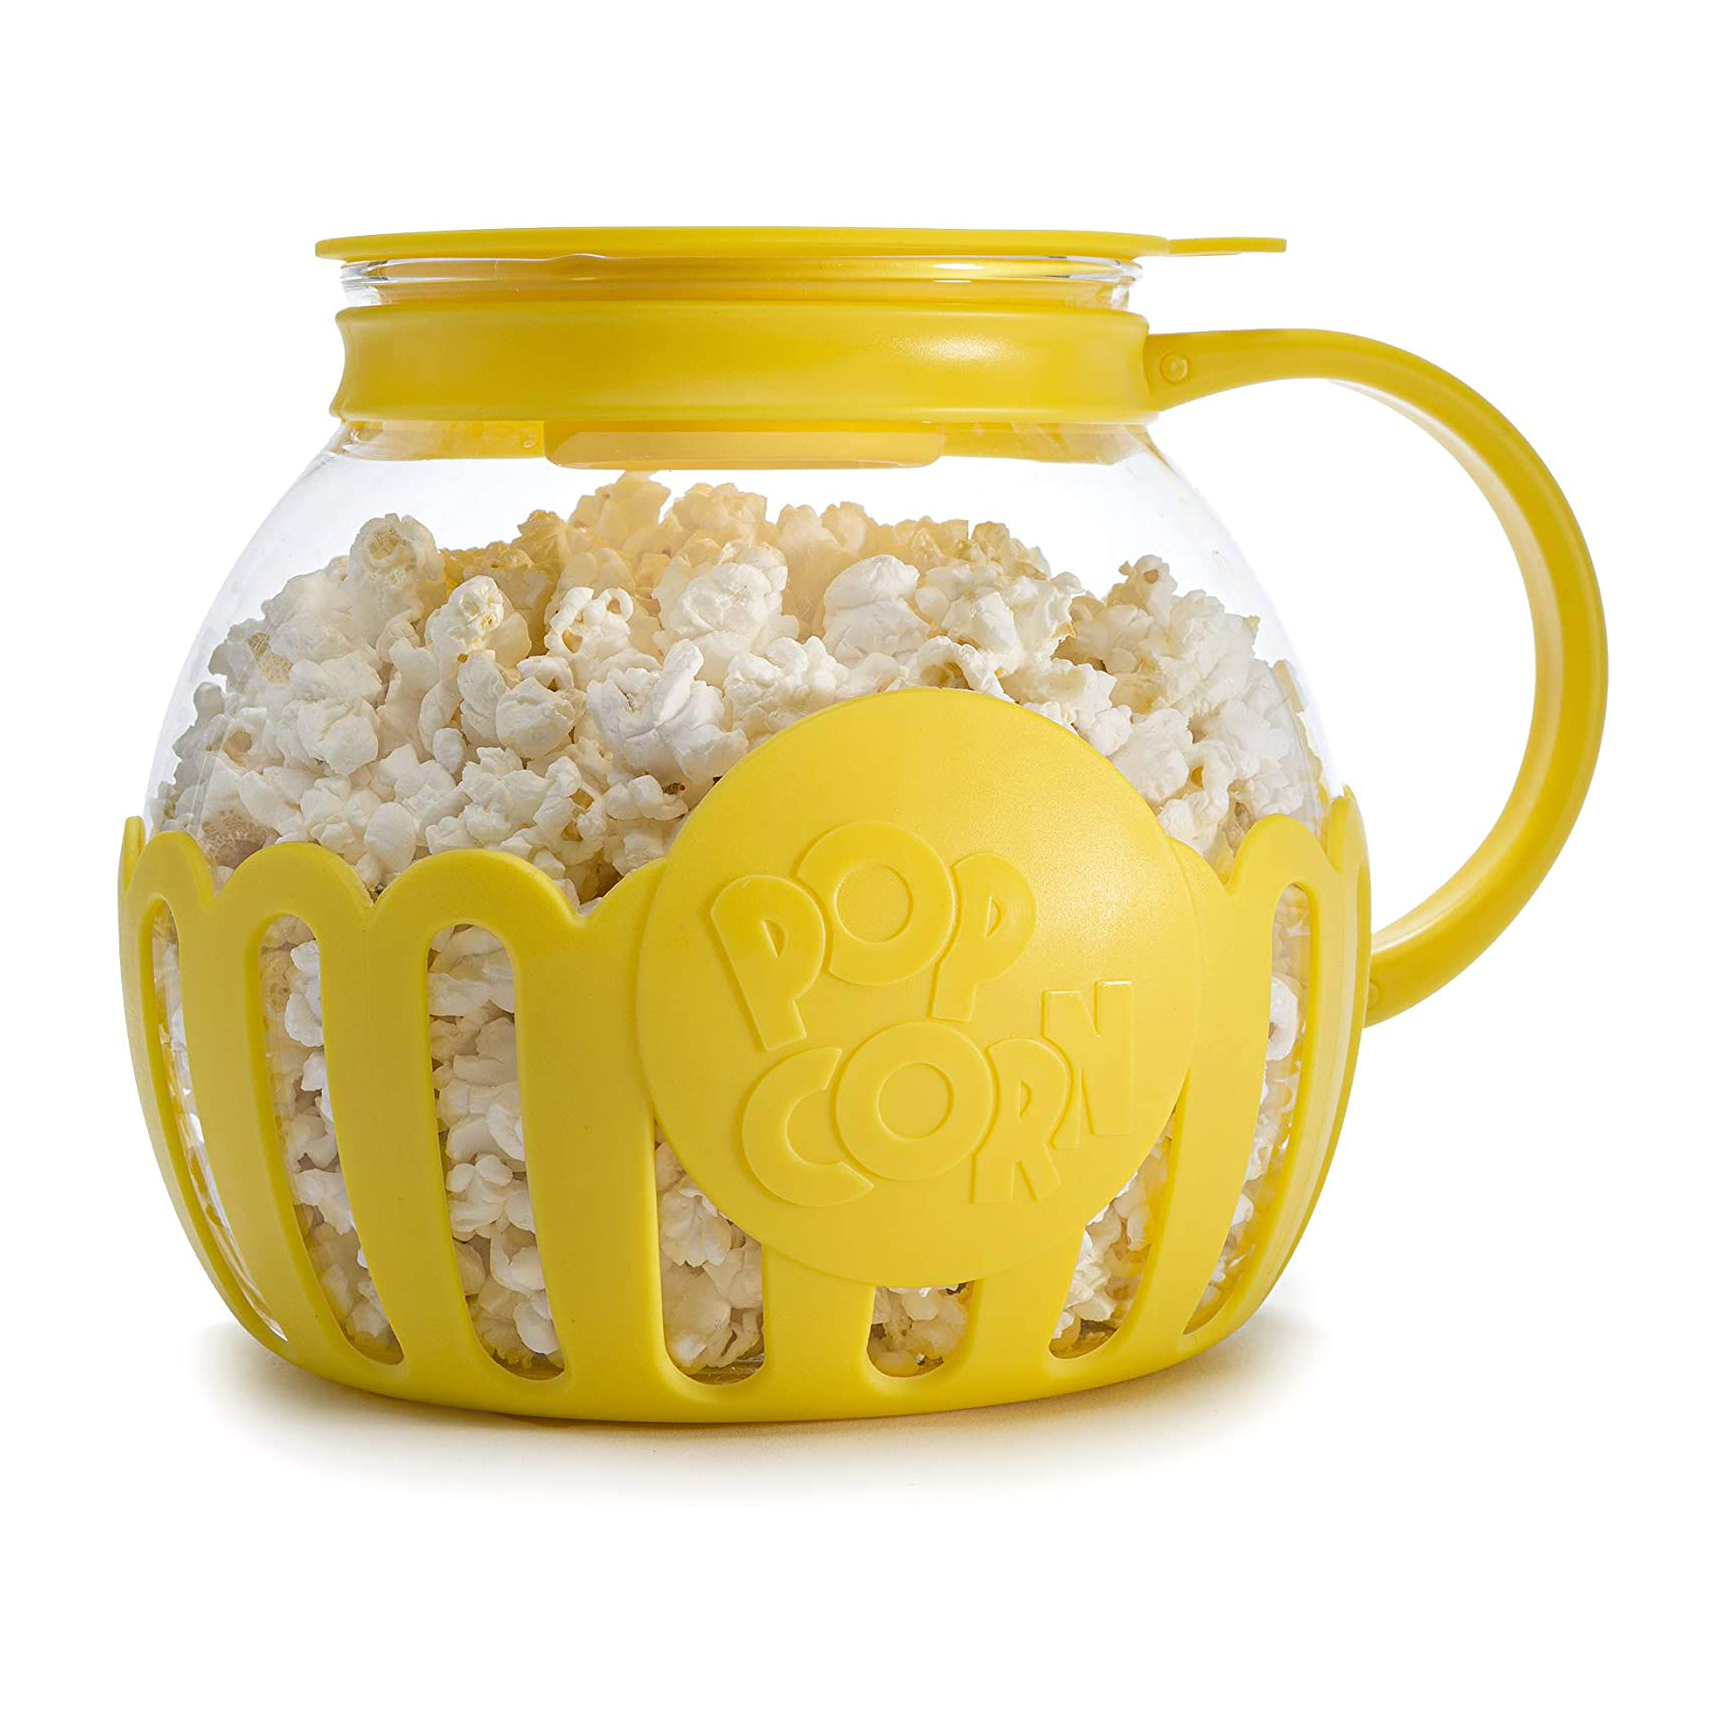 Ecolution Original Micro-Pop Popcorn Popper